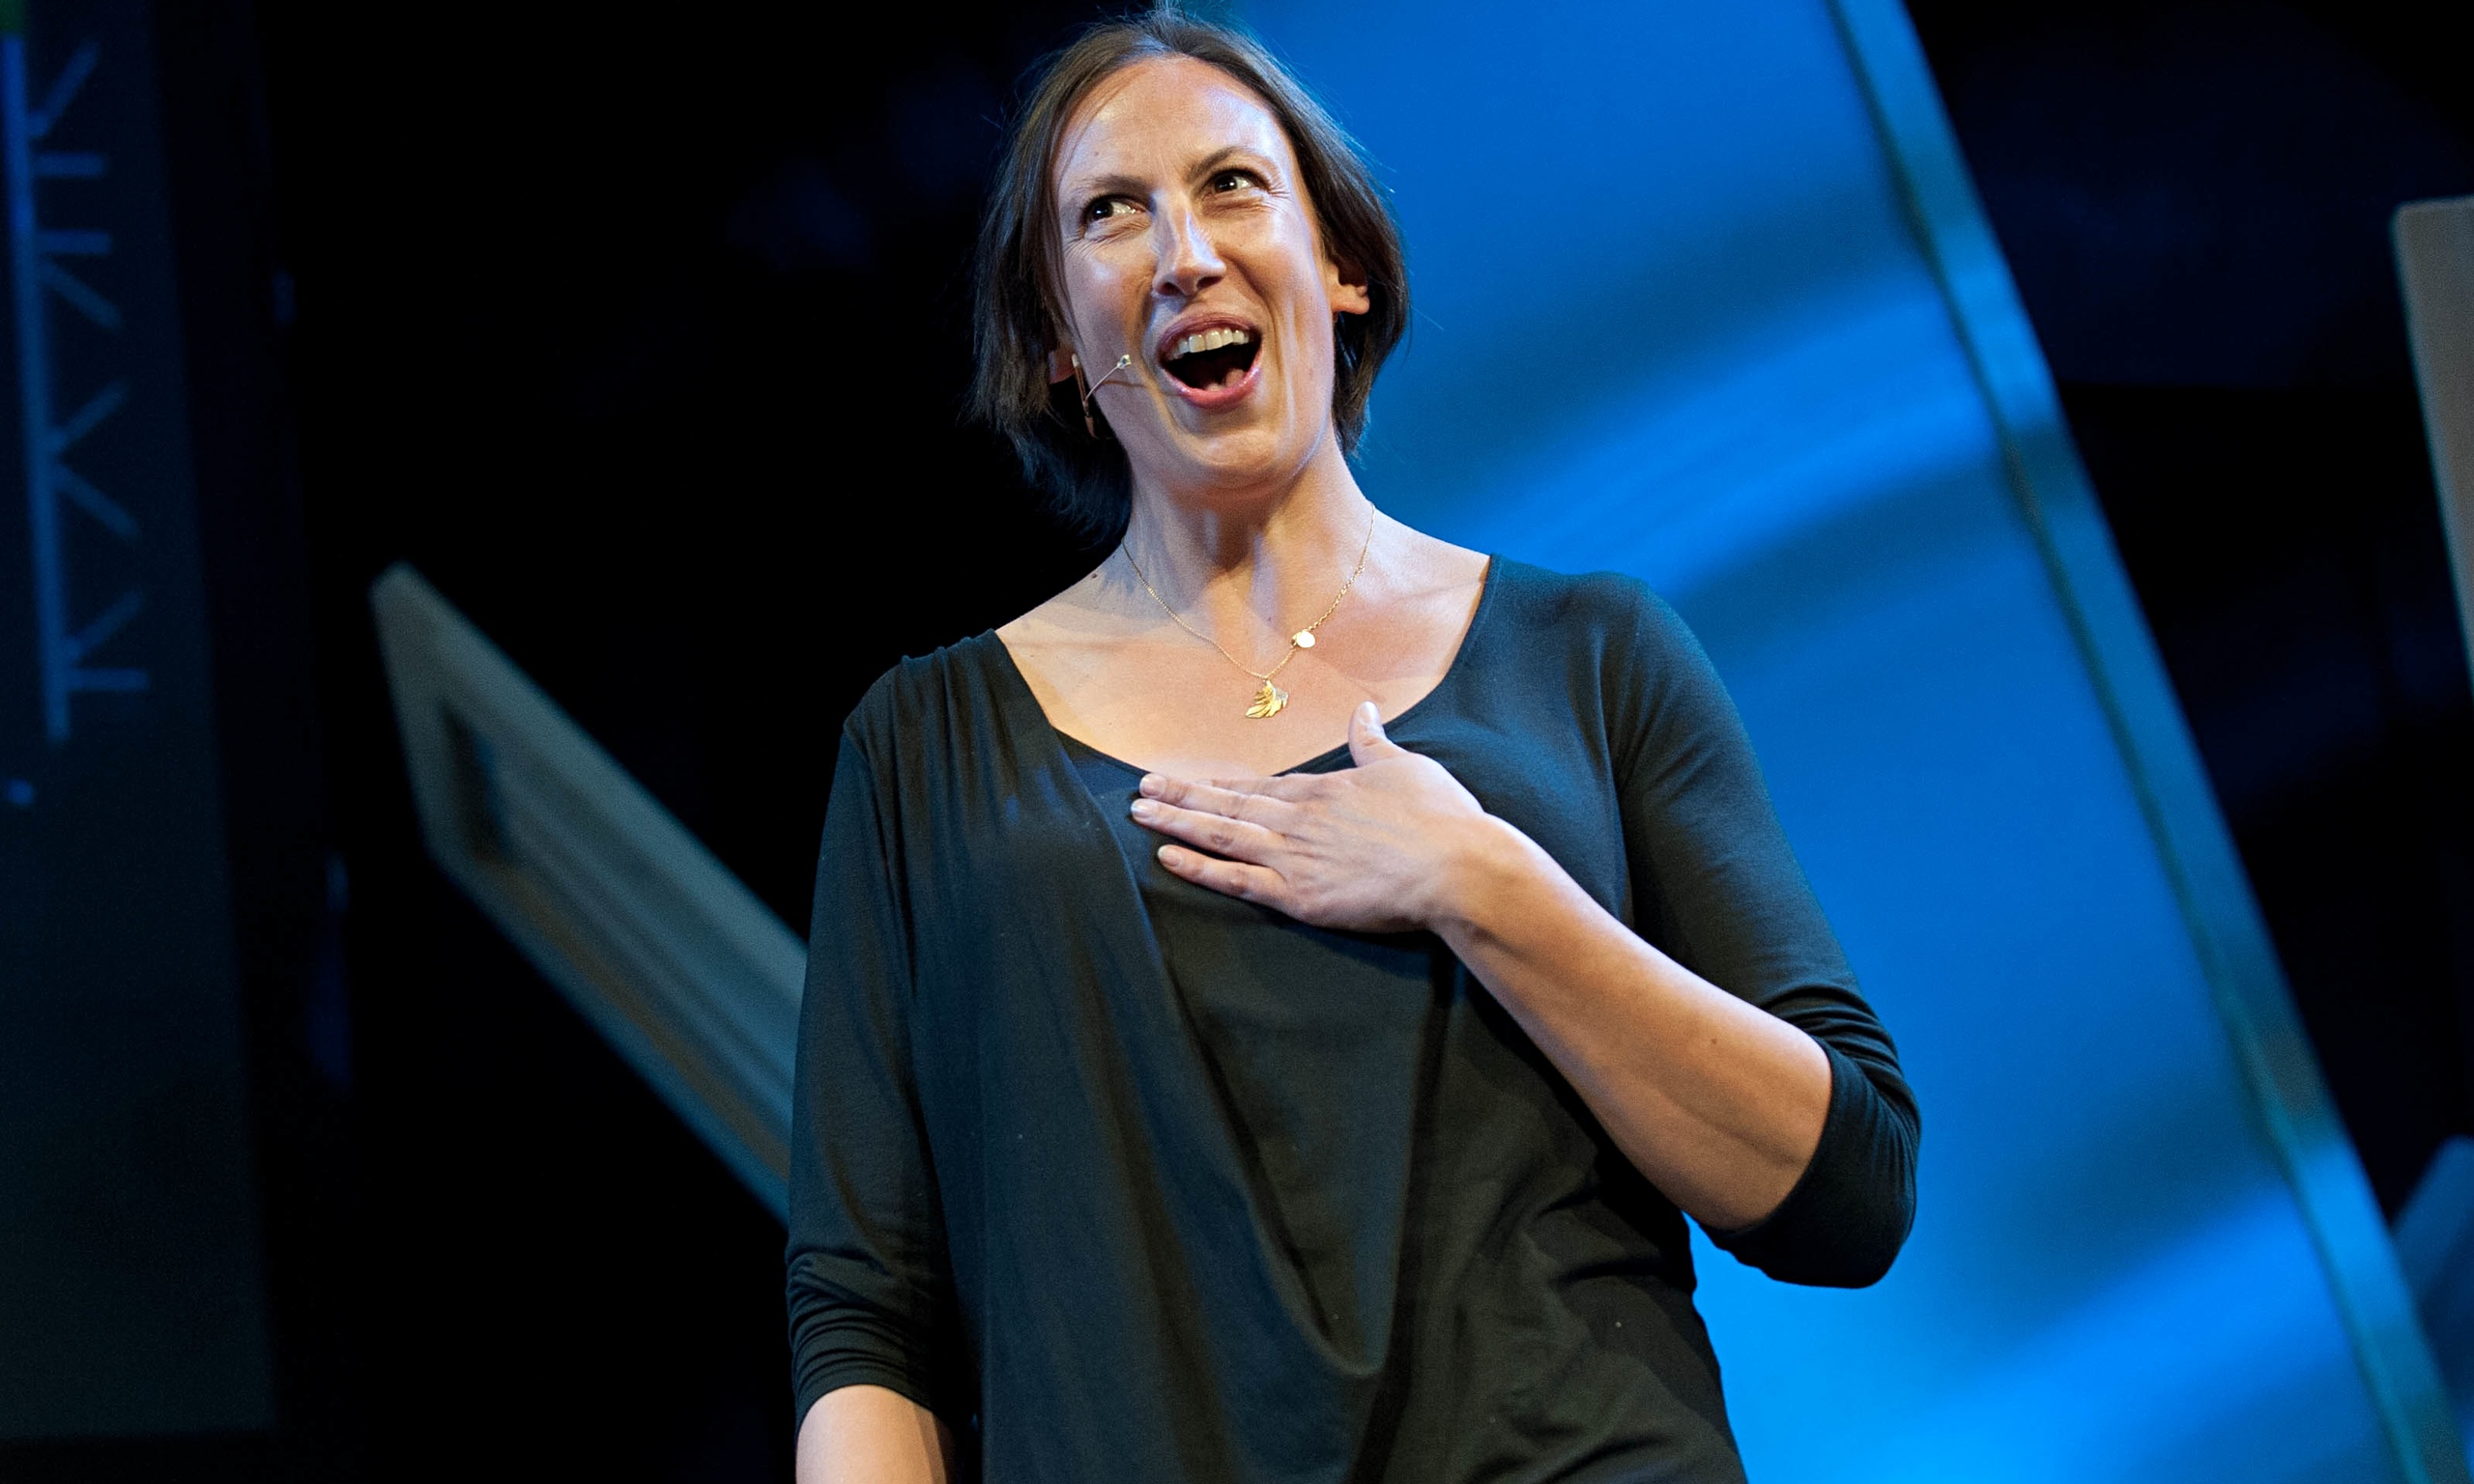 Miranda Hart Seeks To Shut That Door On Talk Of